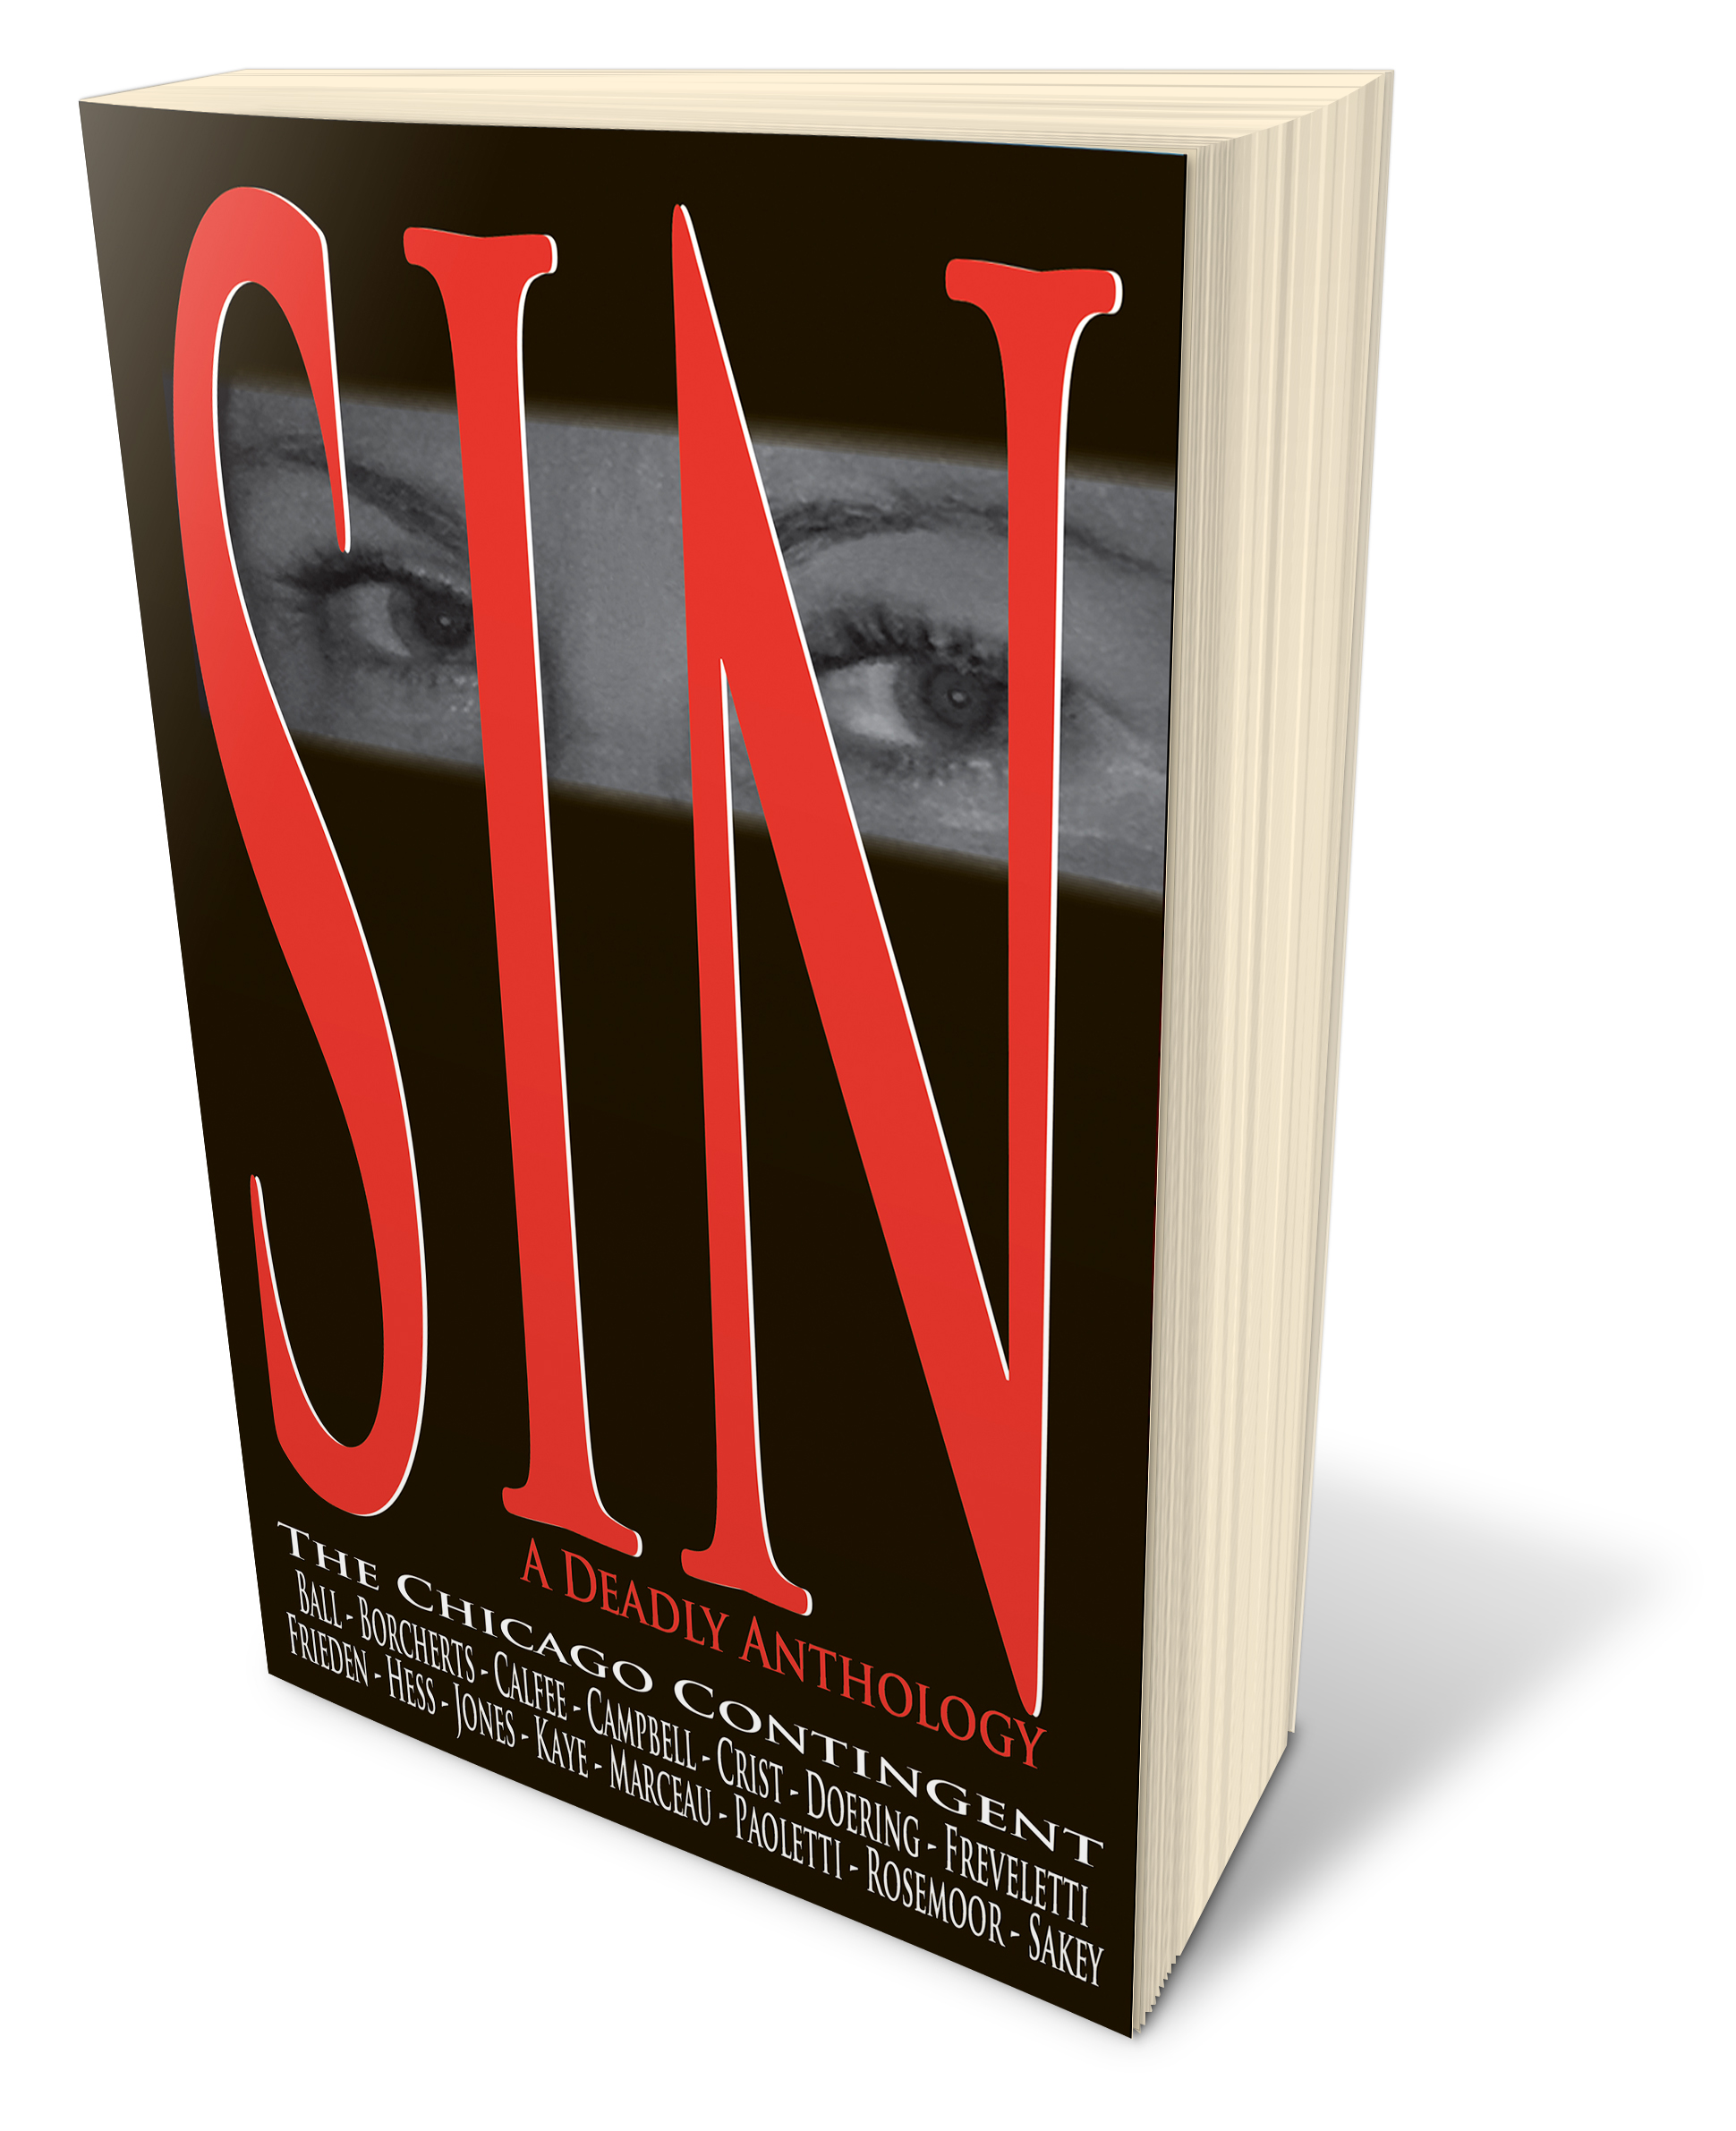 SIN: A deadly anthology